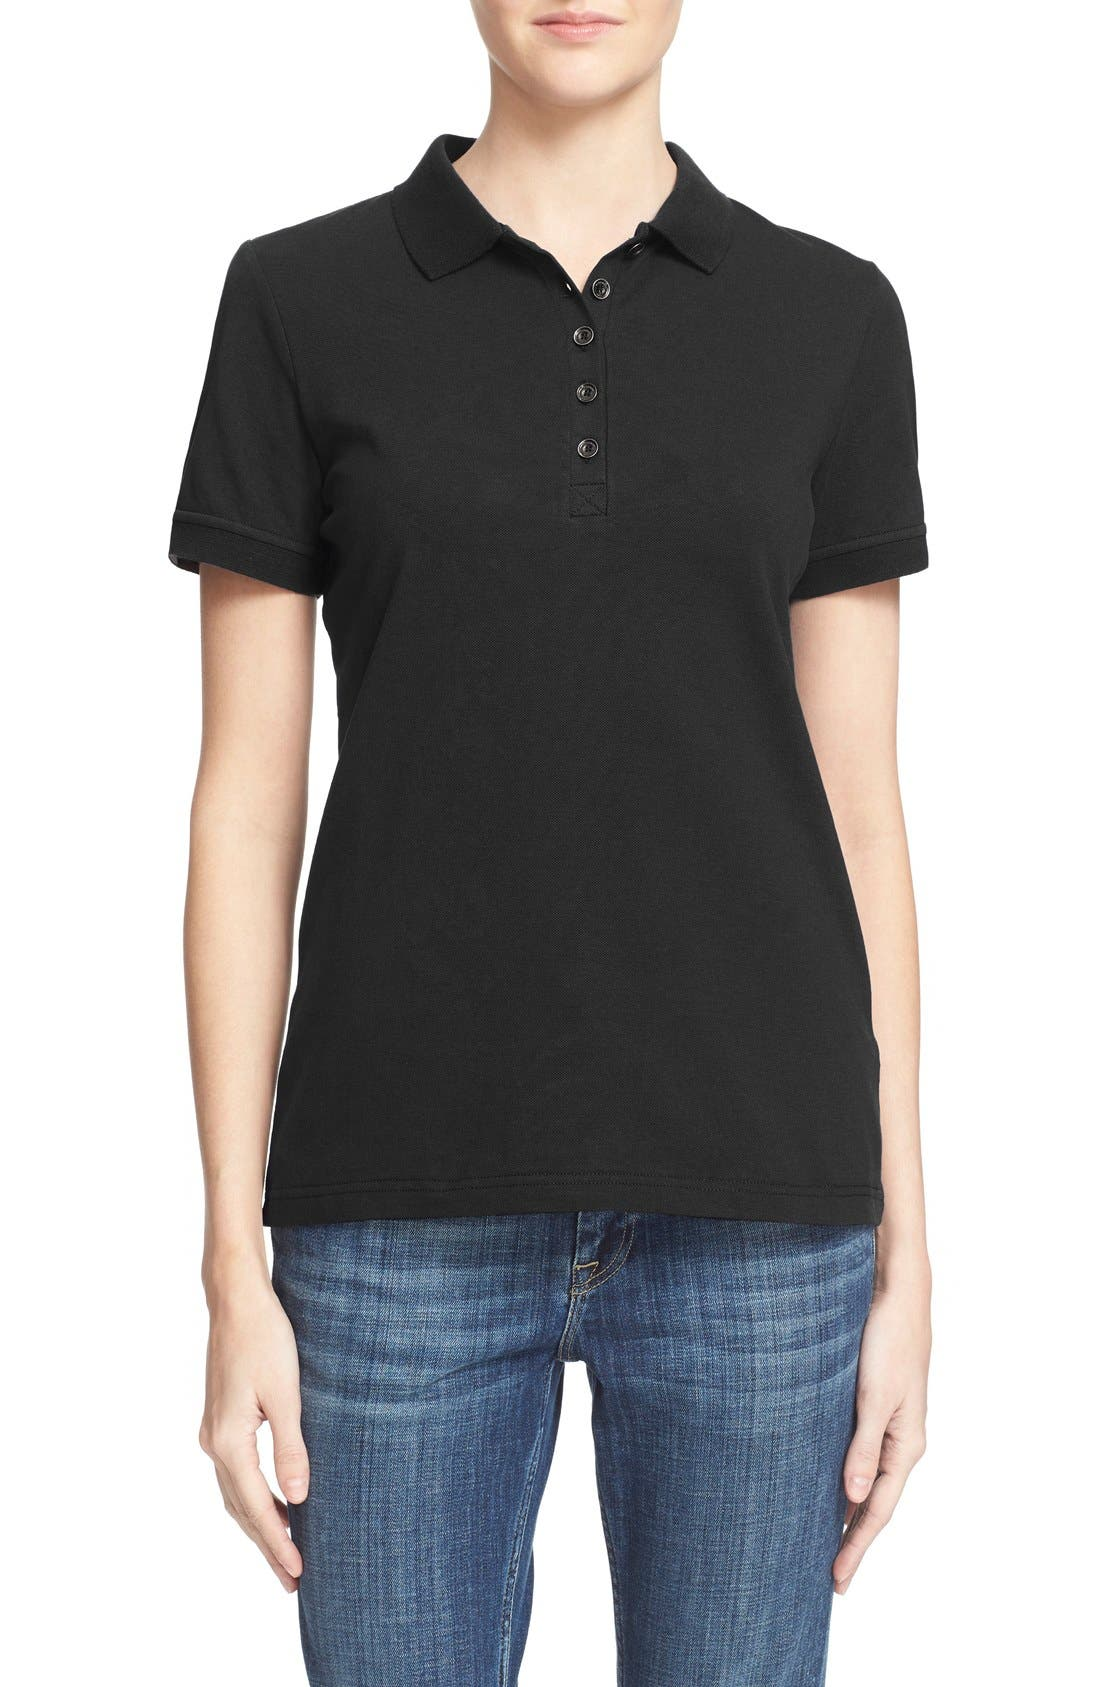 Alternate Image 1 Selected - Burberry Brit Short Sleeve Polo